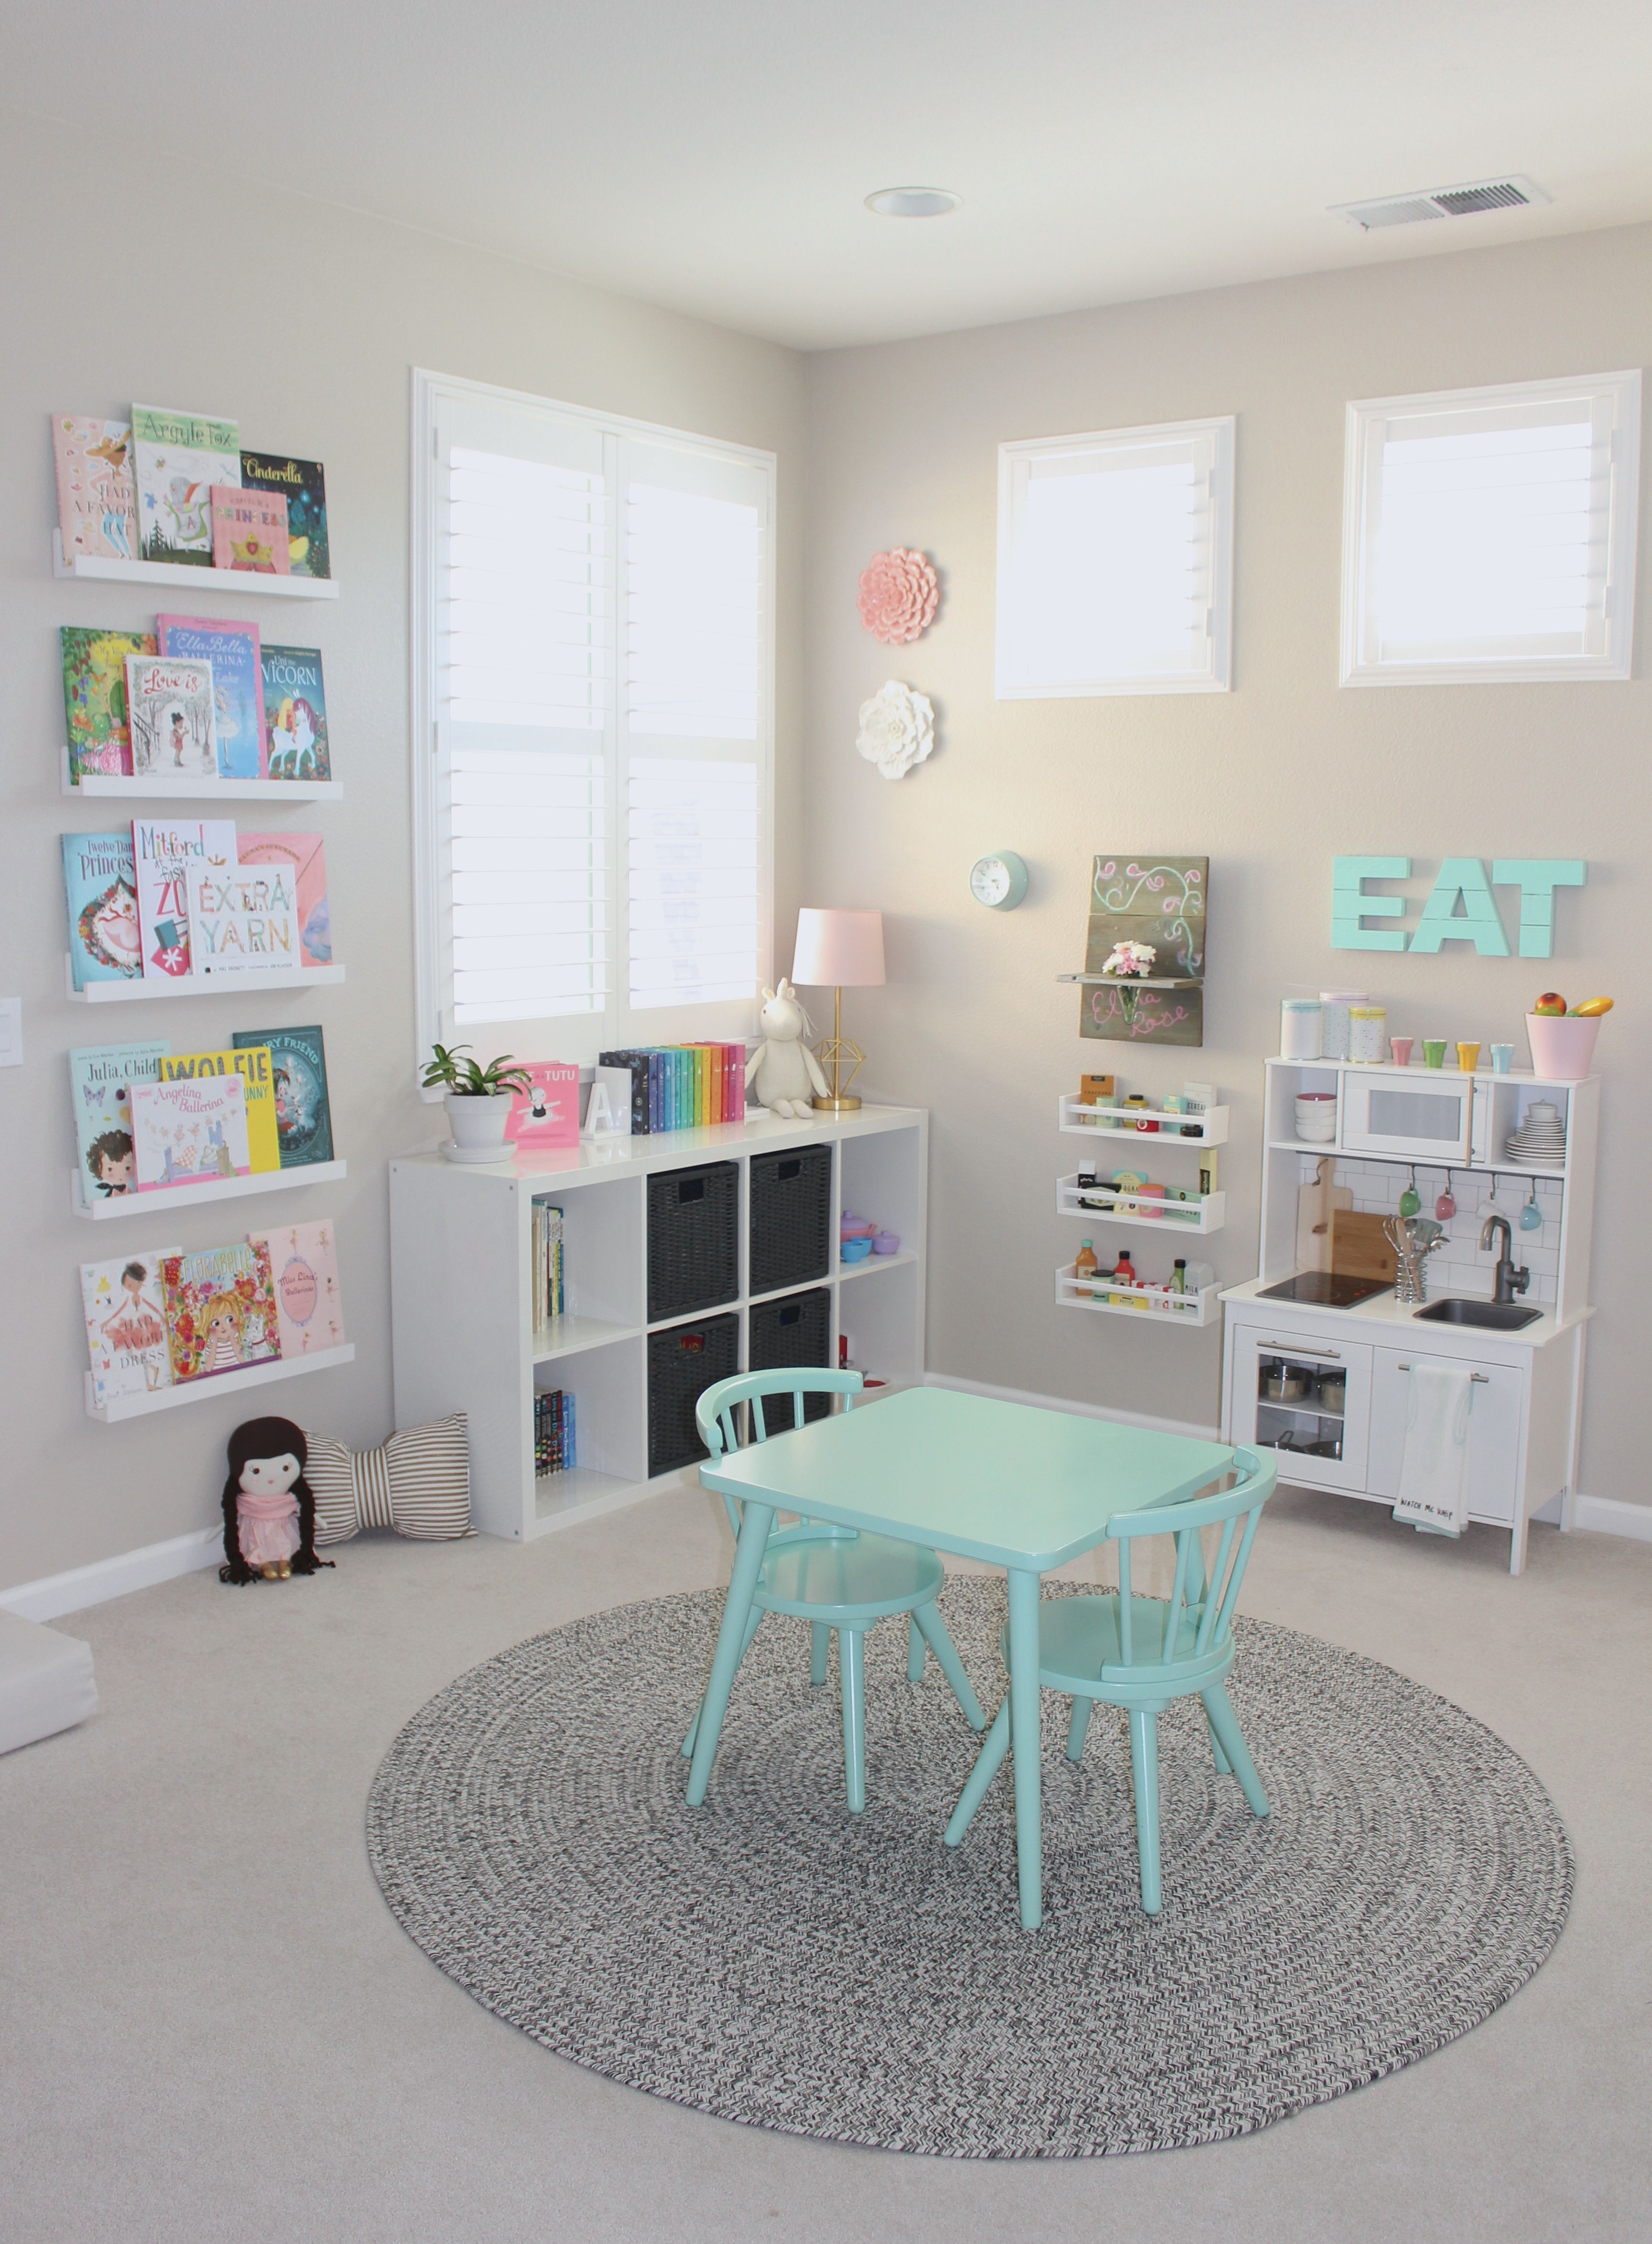 Pretty In Pastels Playroom   Play Time Playroom Ideas